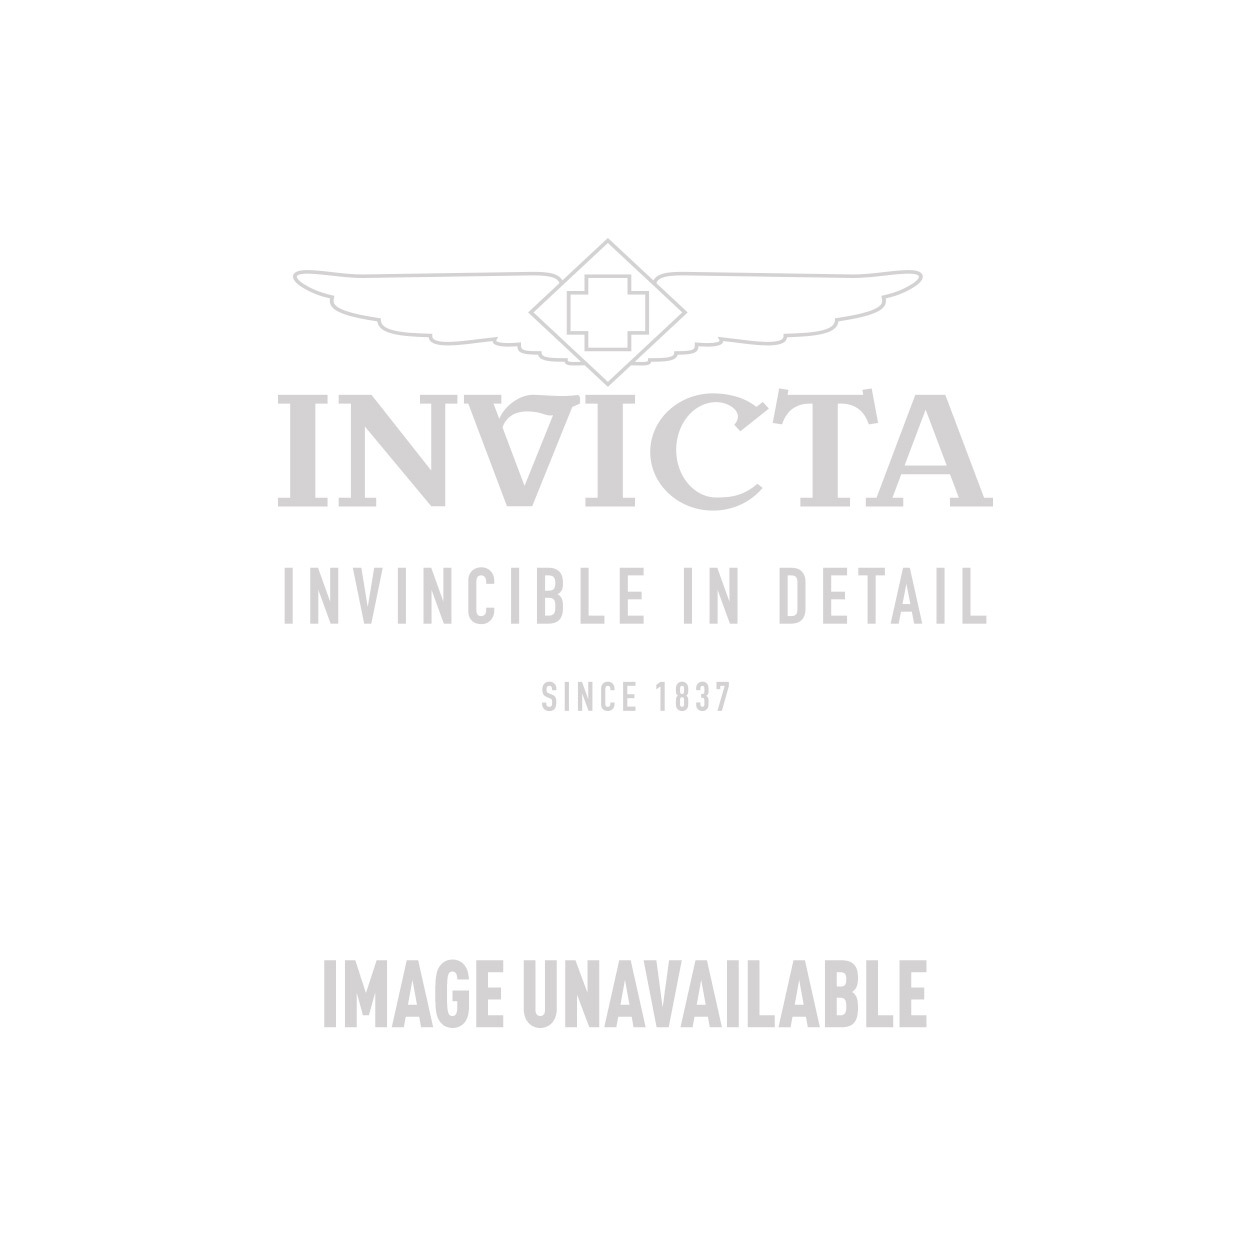 Invicta Angel Swiss Movement Quartz Watch - Stainless Steel case with Blue tone Leather band - Model 19909